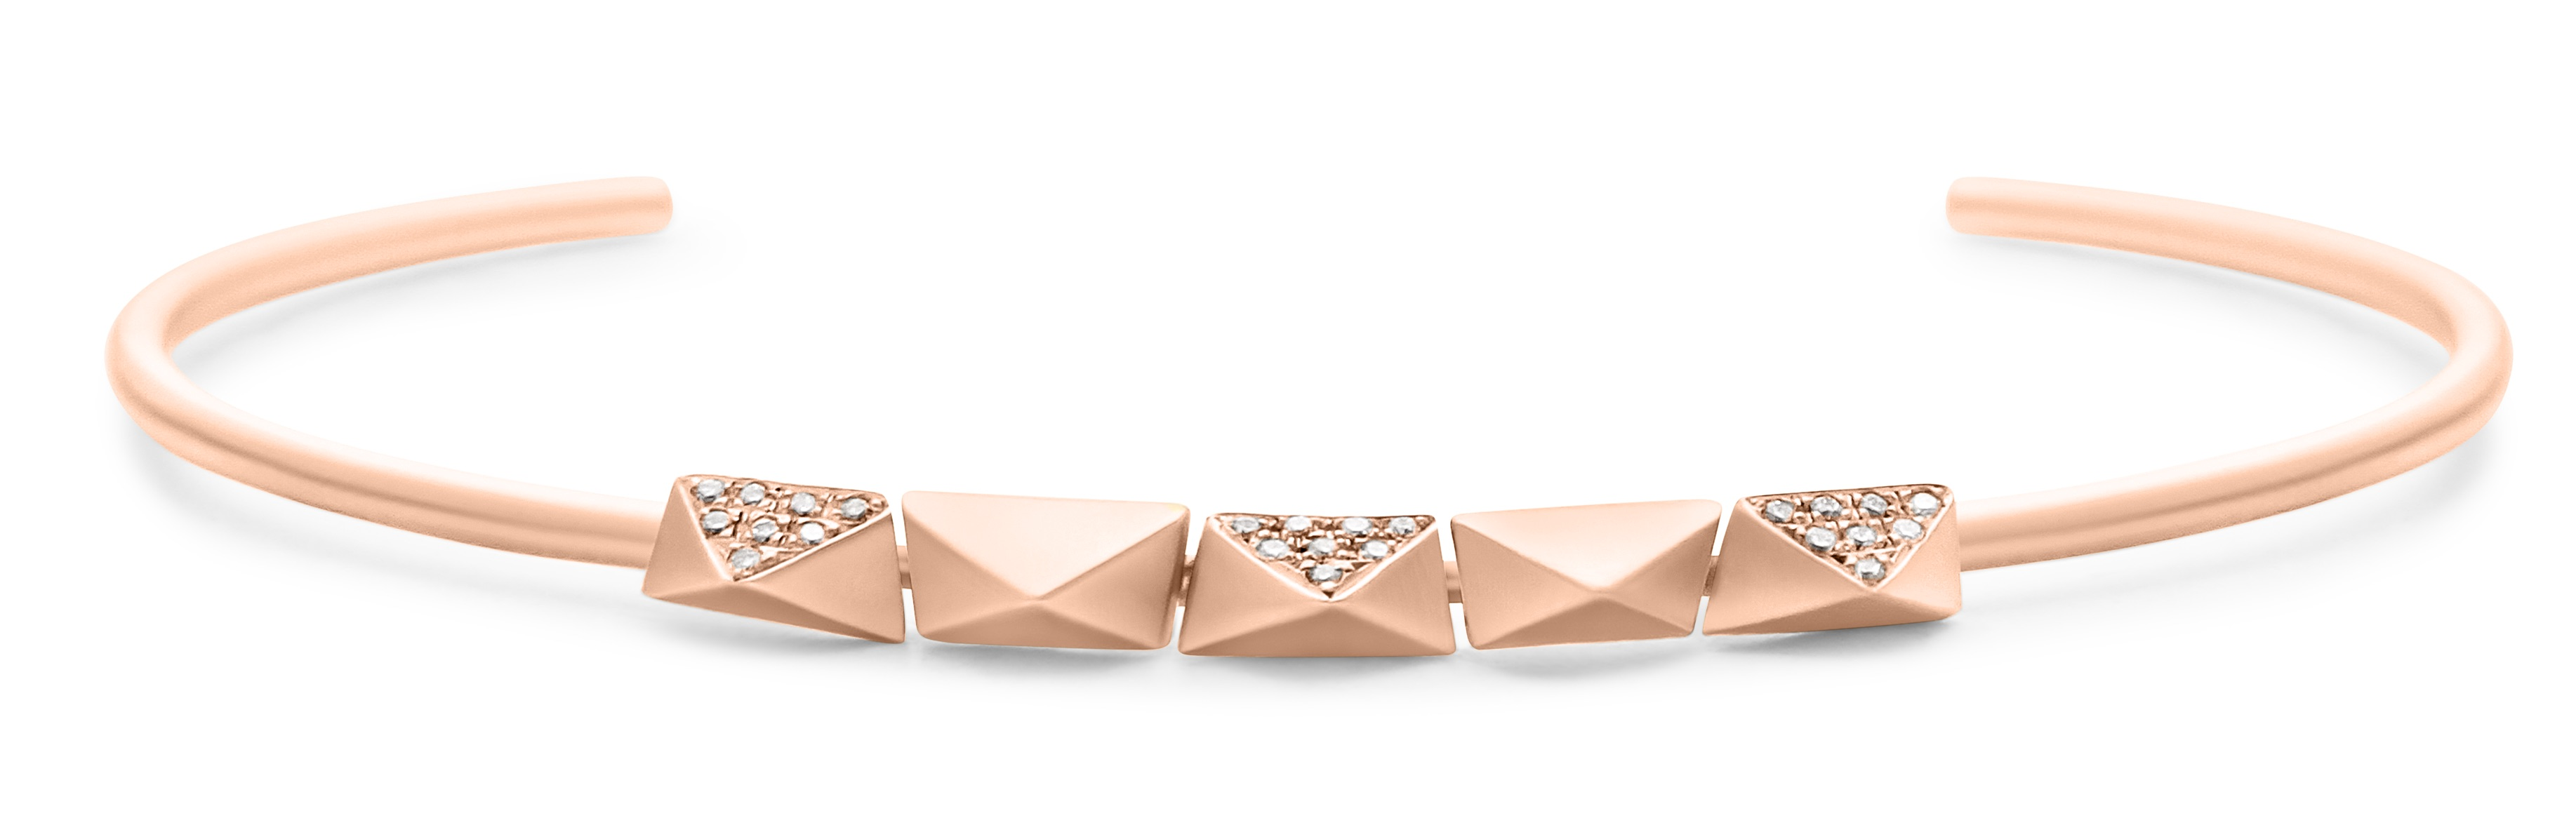 Dana Bronfman 5 Pi cuff bracelet | JCK On Your Market